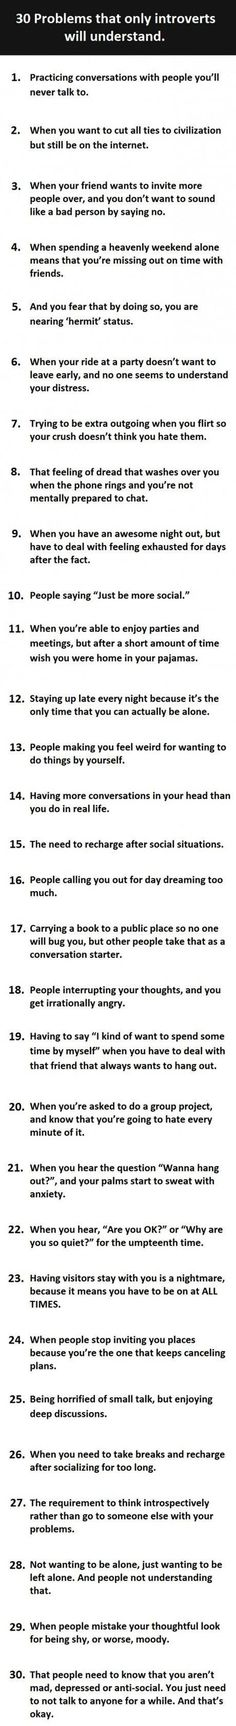 30 problems only introverts will understand.  // funny pictures - funny photos - funny images - funny pics - funny quotes - #lol #humor #funnypictures